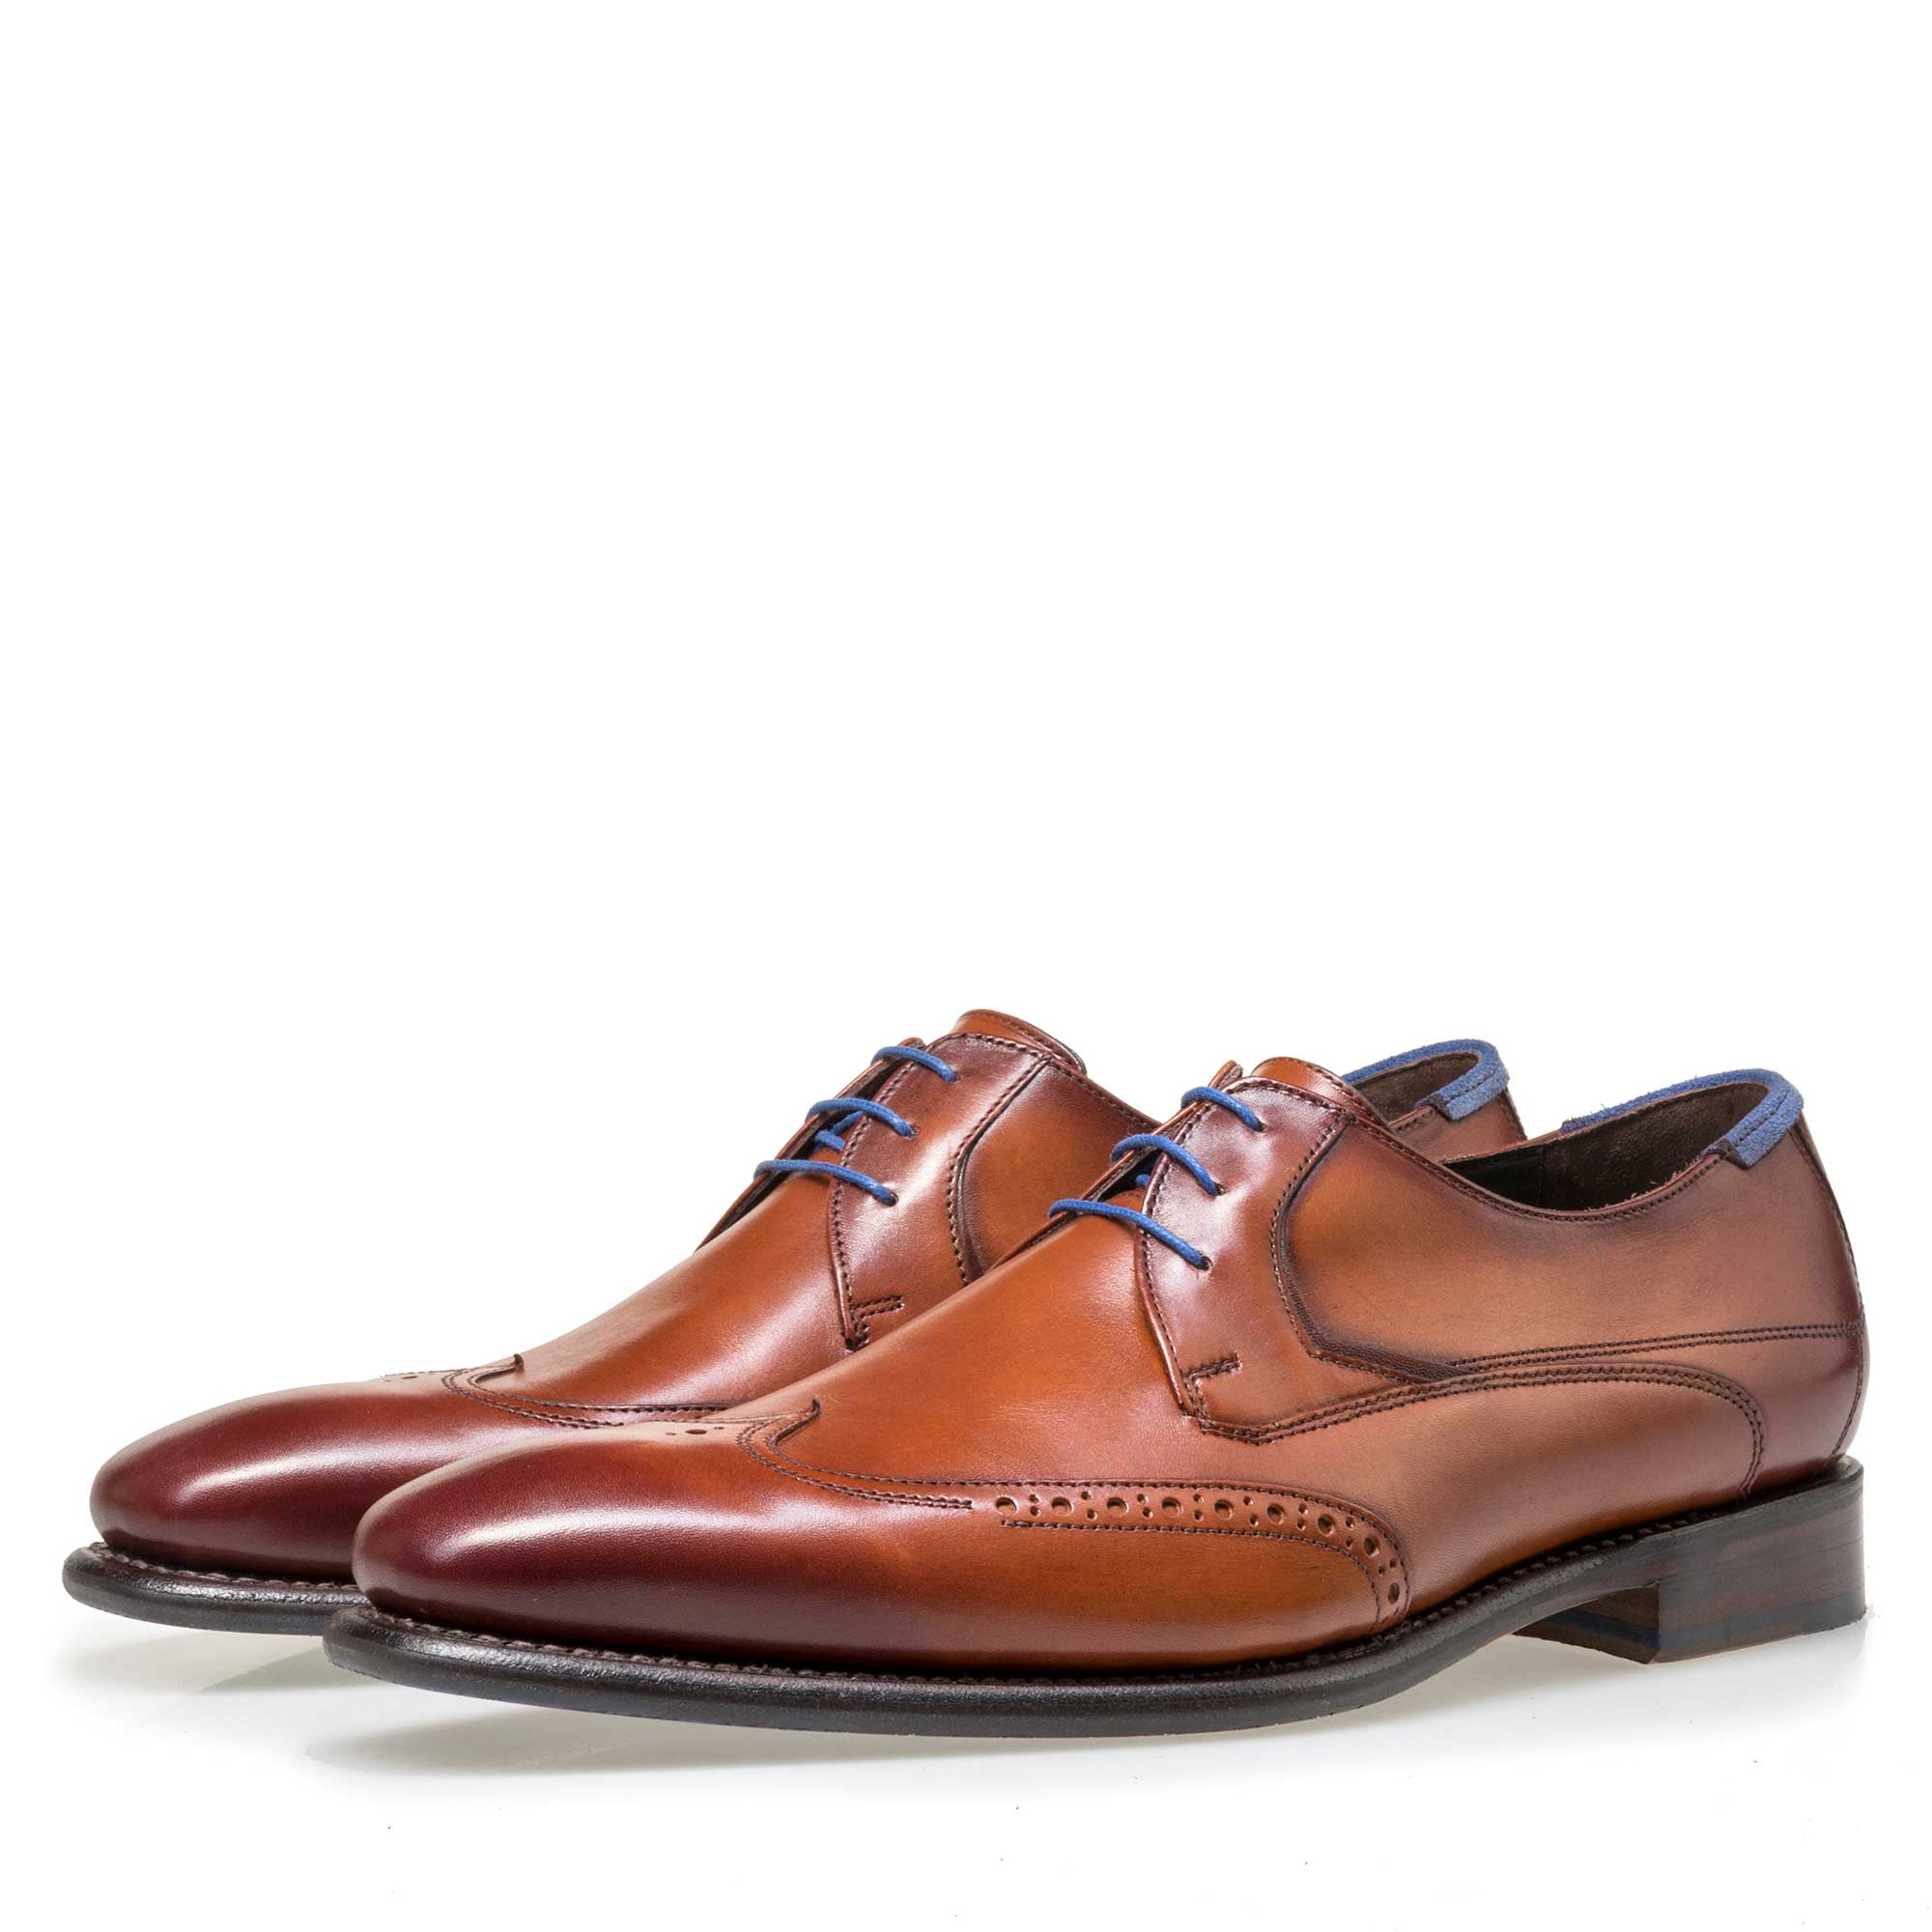 18039/04 - Floris van Bommel men's cognac-coloured leather lace shoe